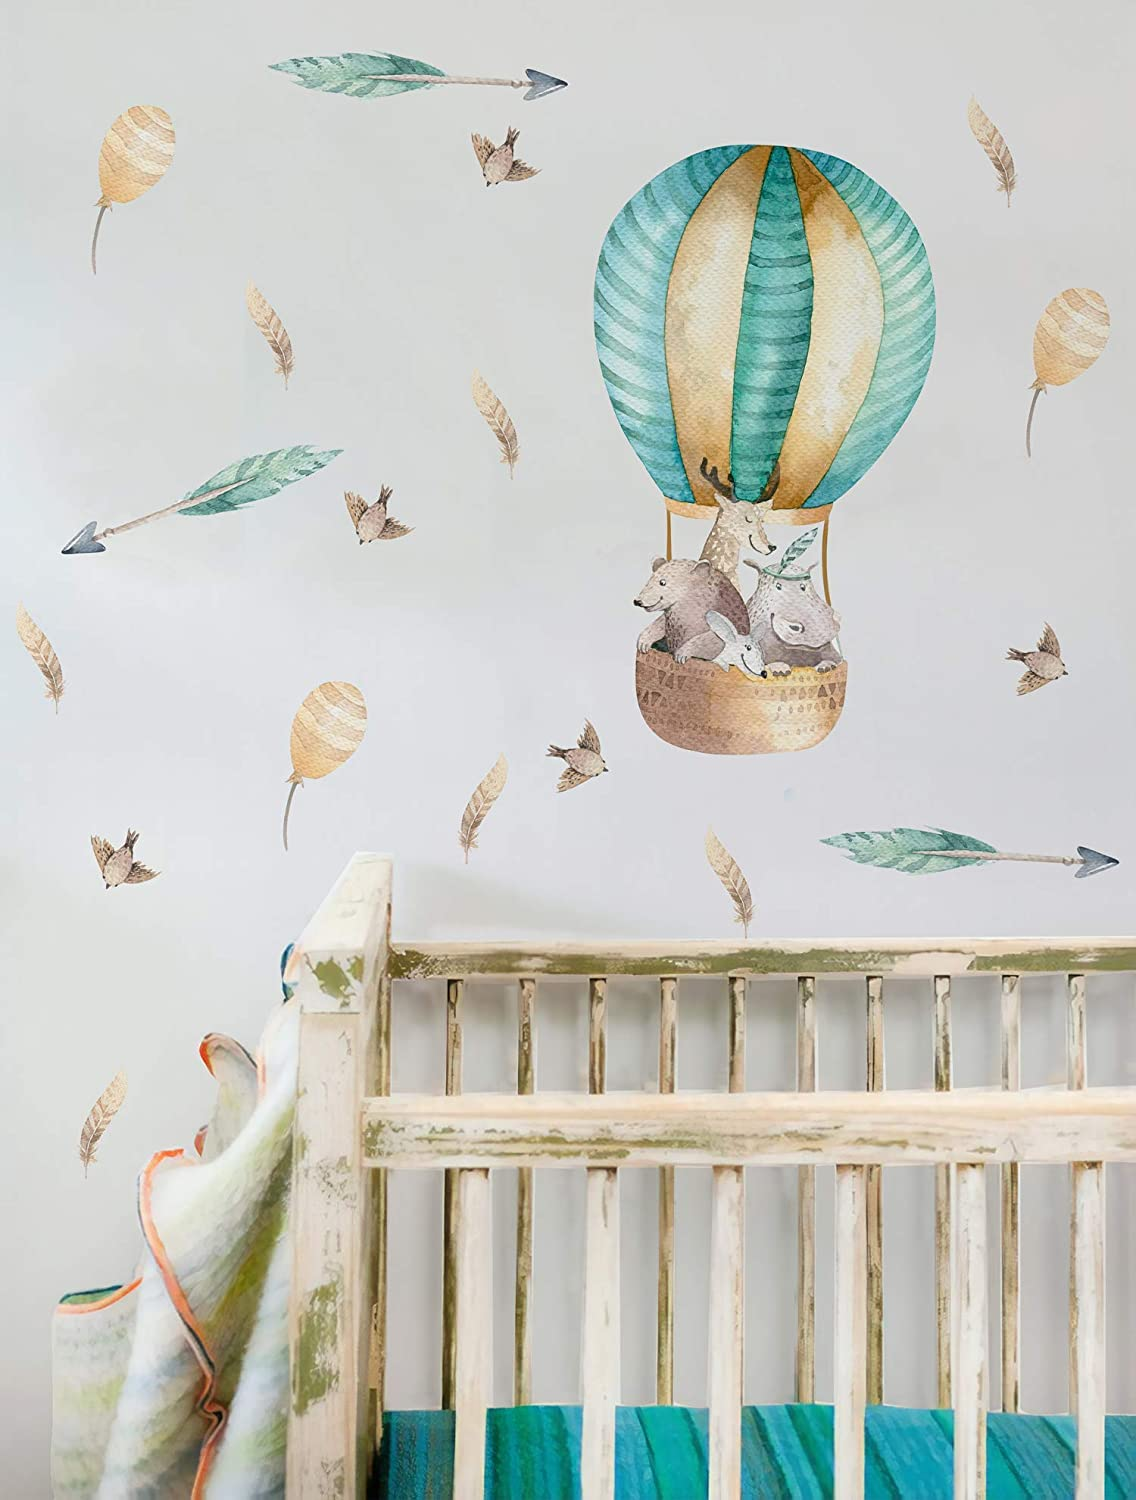 Murwall Hot Air Balloon Raleigh Mall Wall Limited price sale Decal Cute Animal For Sti Kids